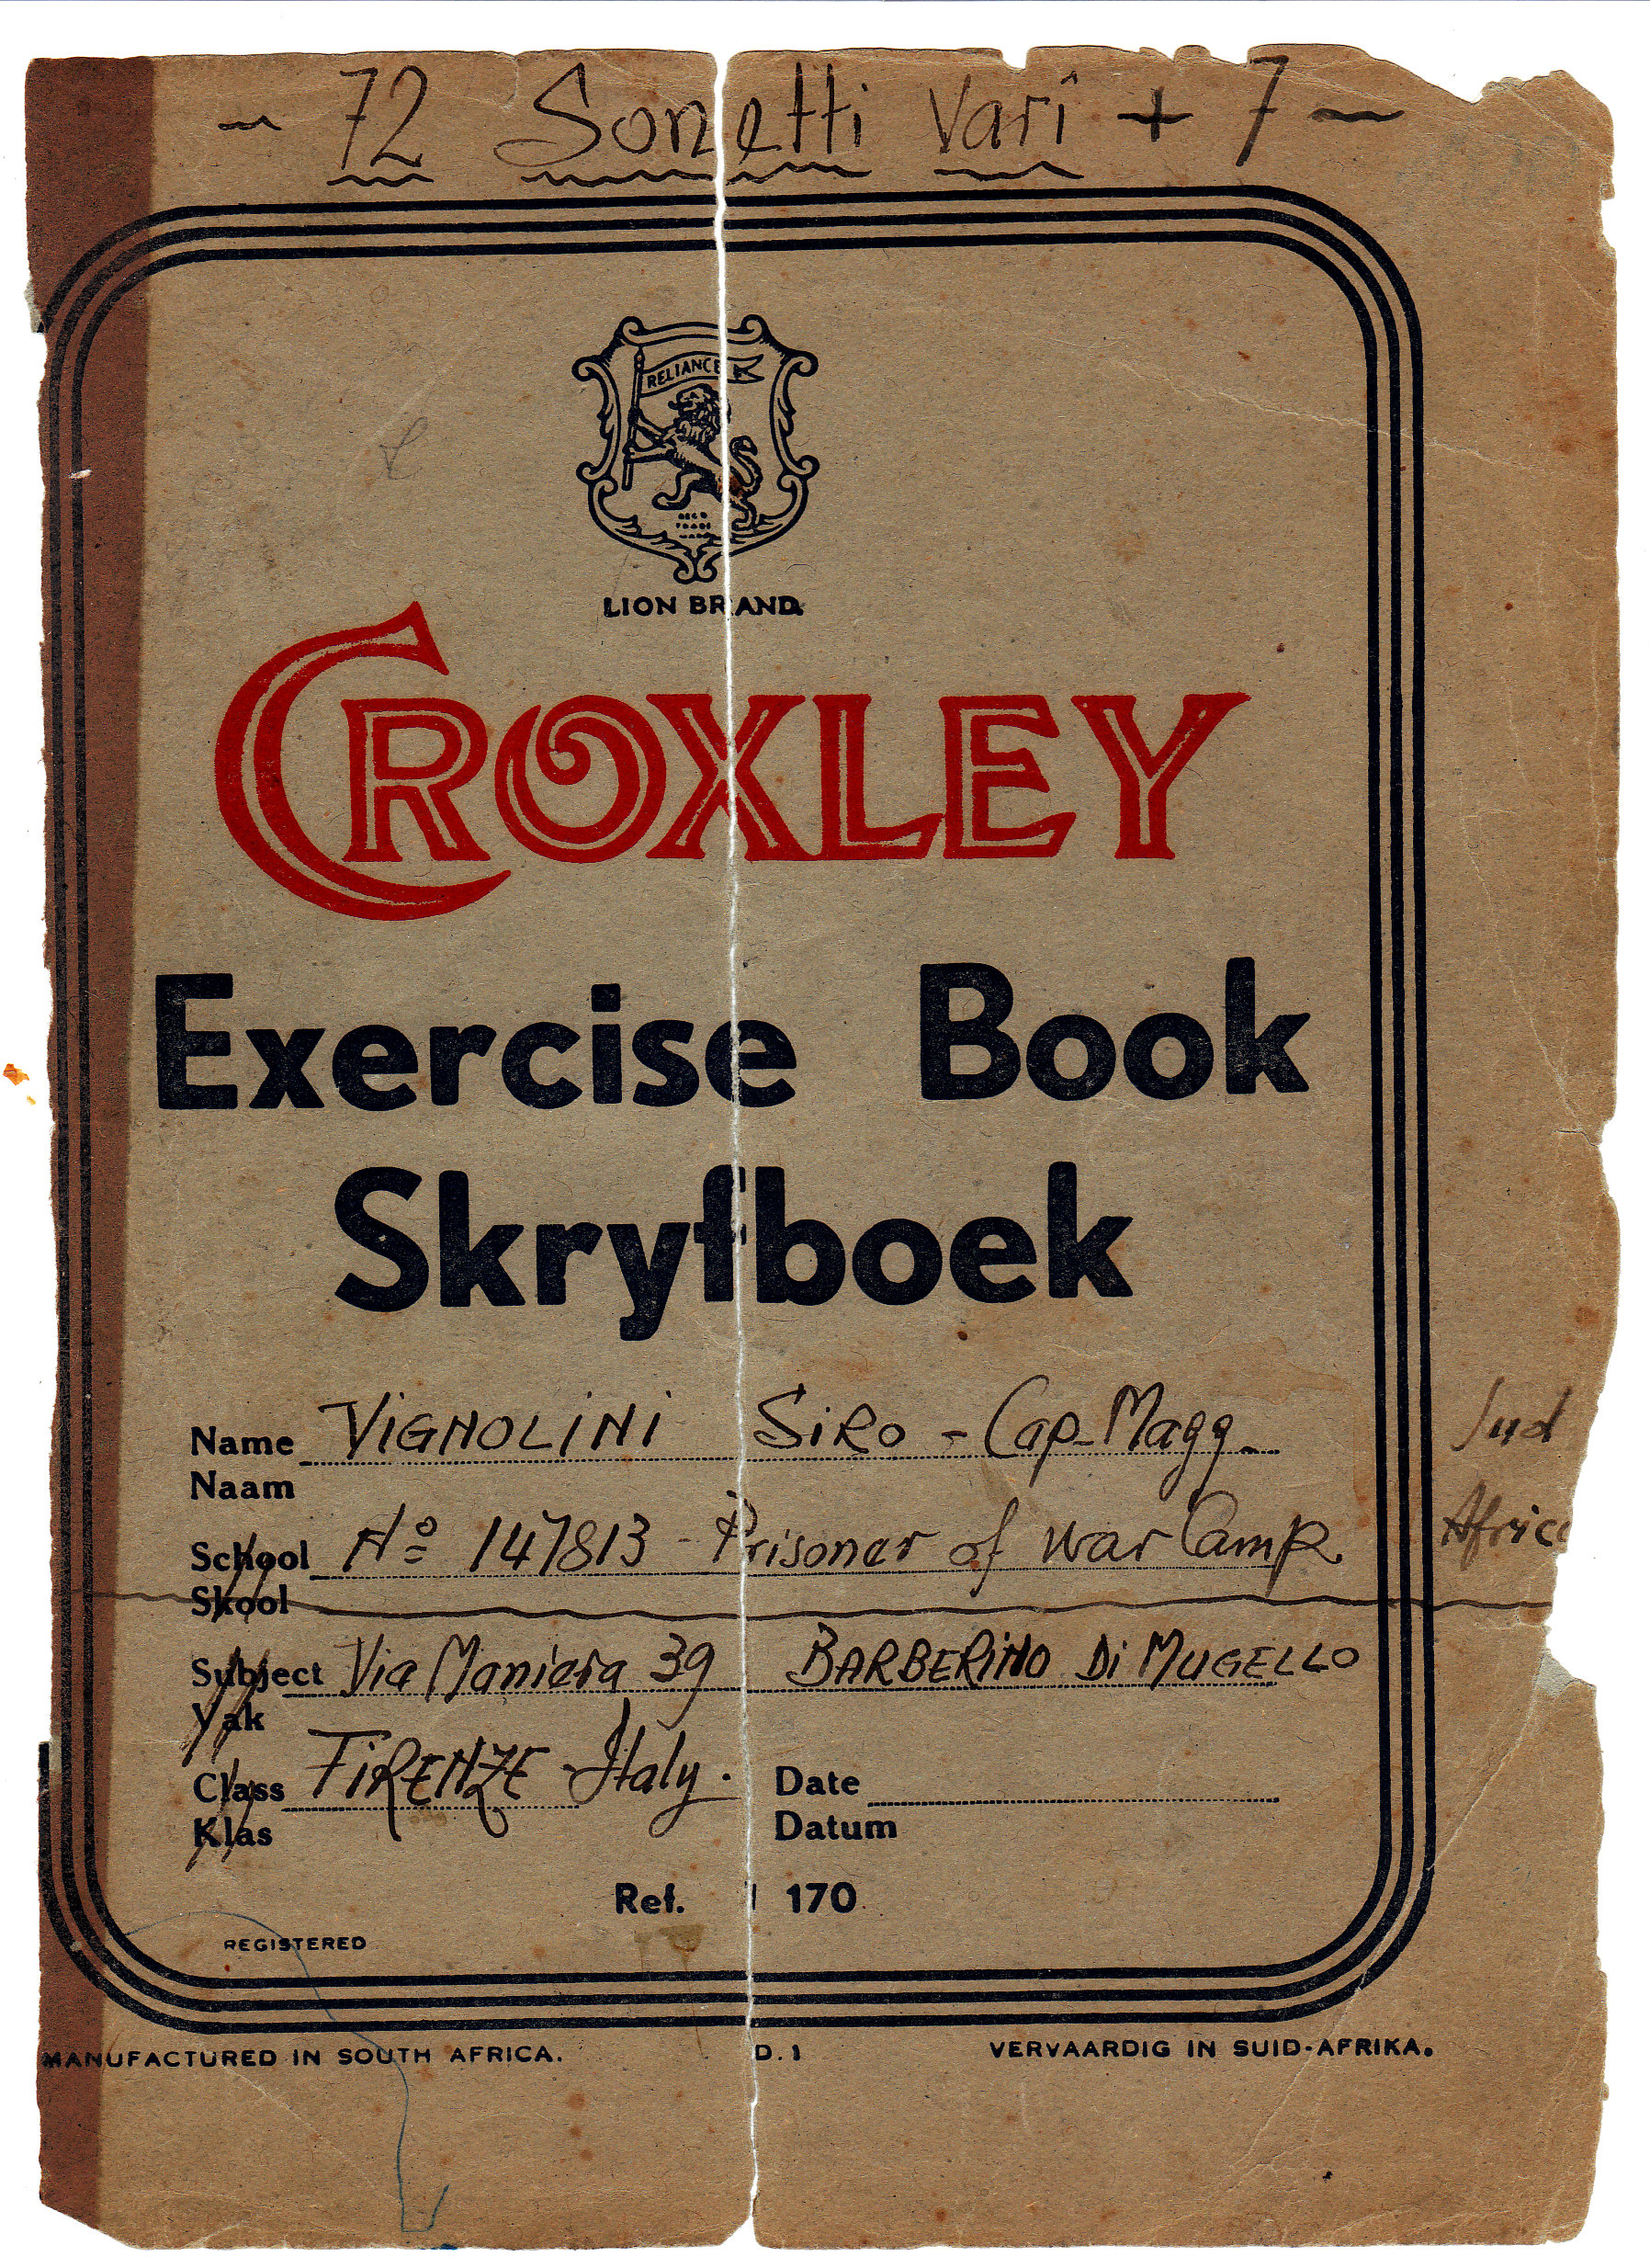 Croxley - Exsercise Book - Skryfboek